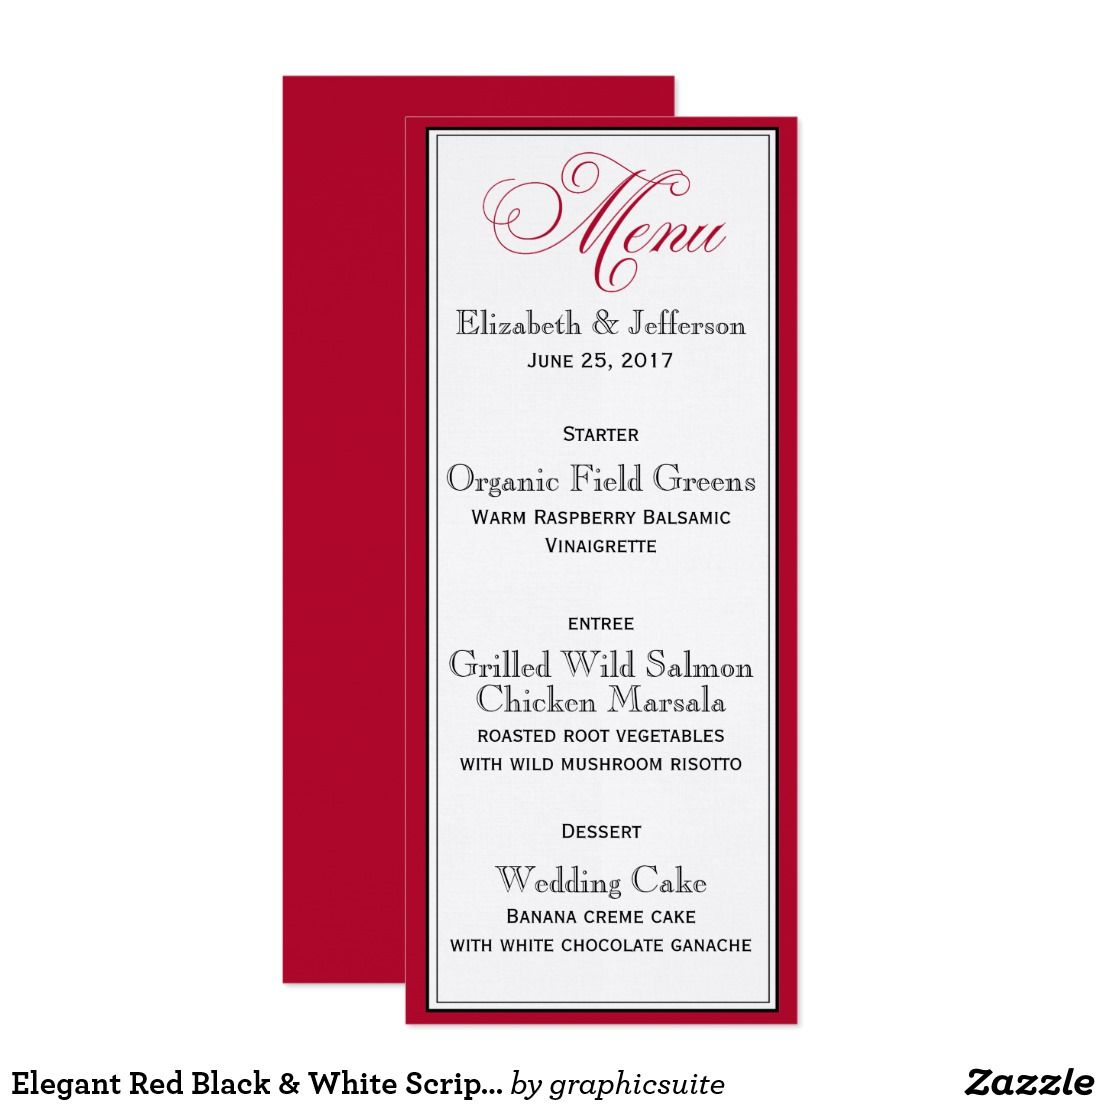 Elegant Red Black & White Script Wedding Menu Card | Wedding : Menu ...